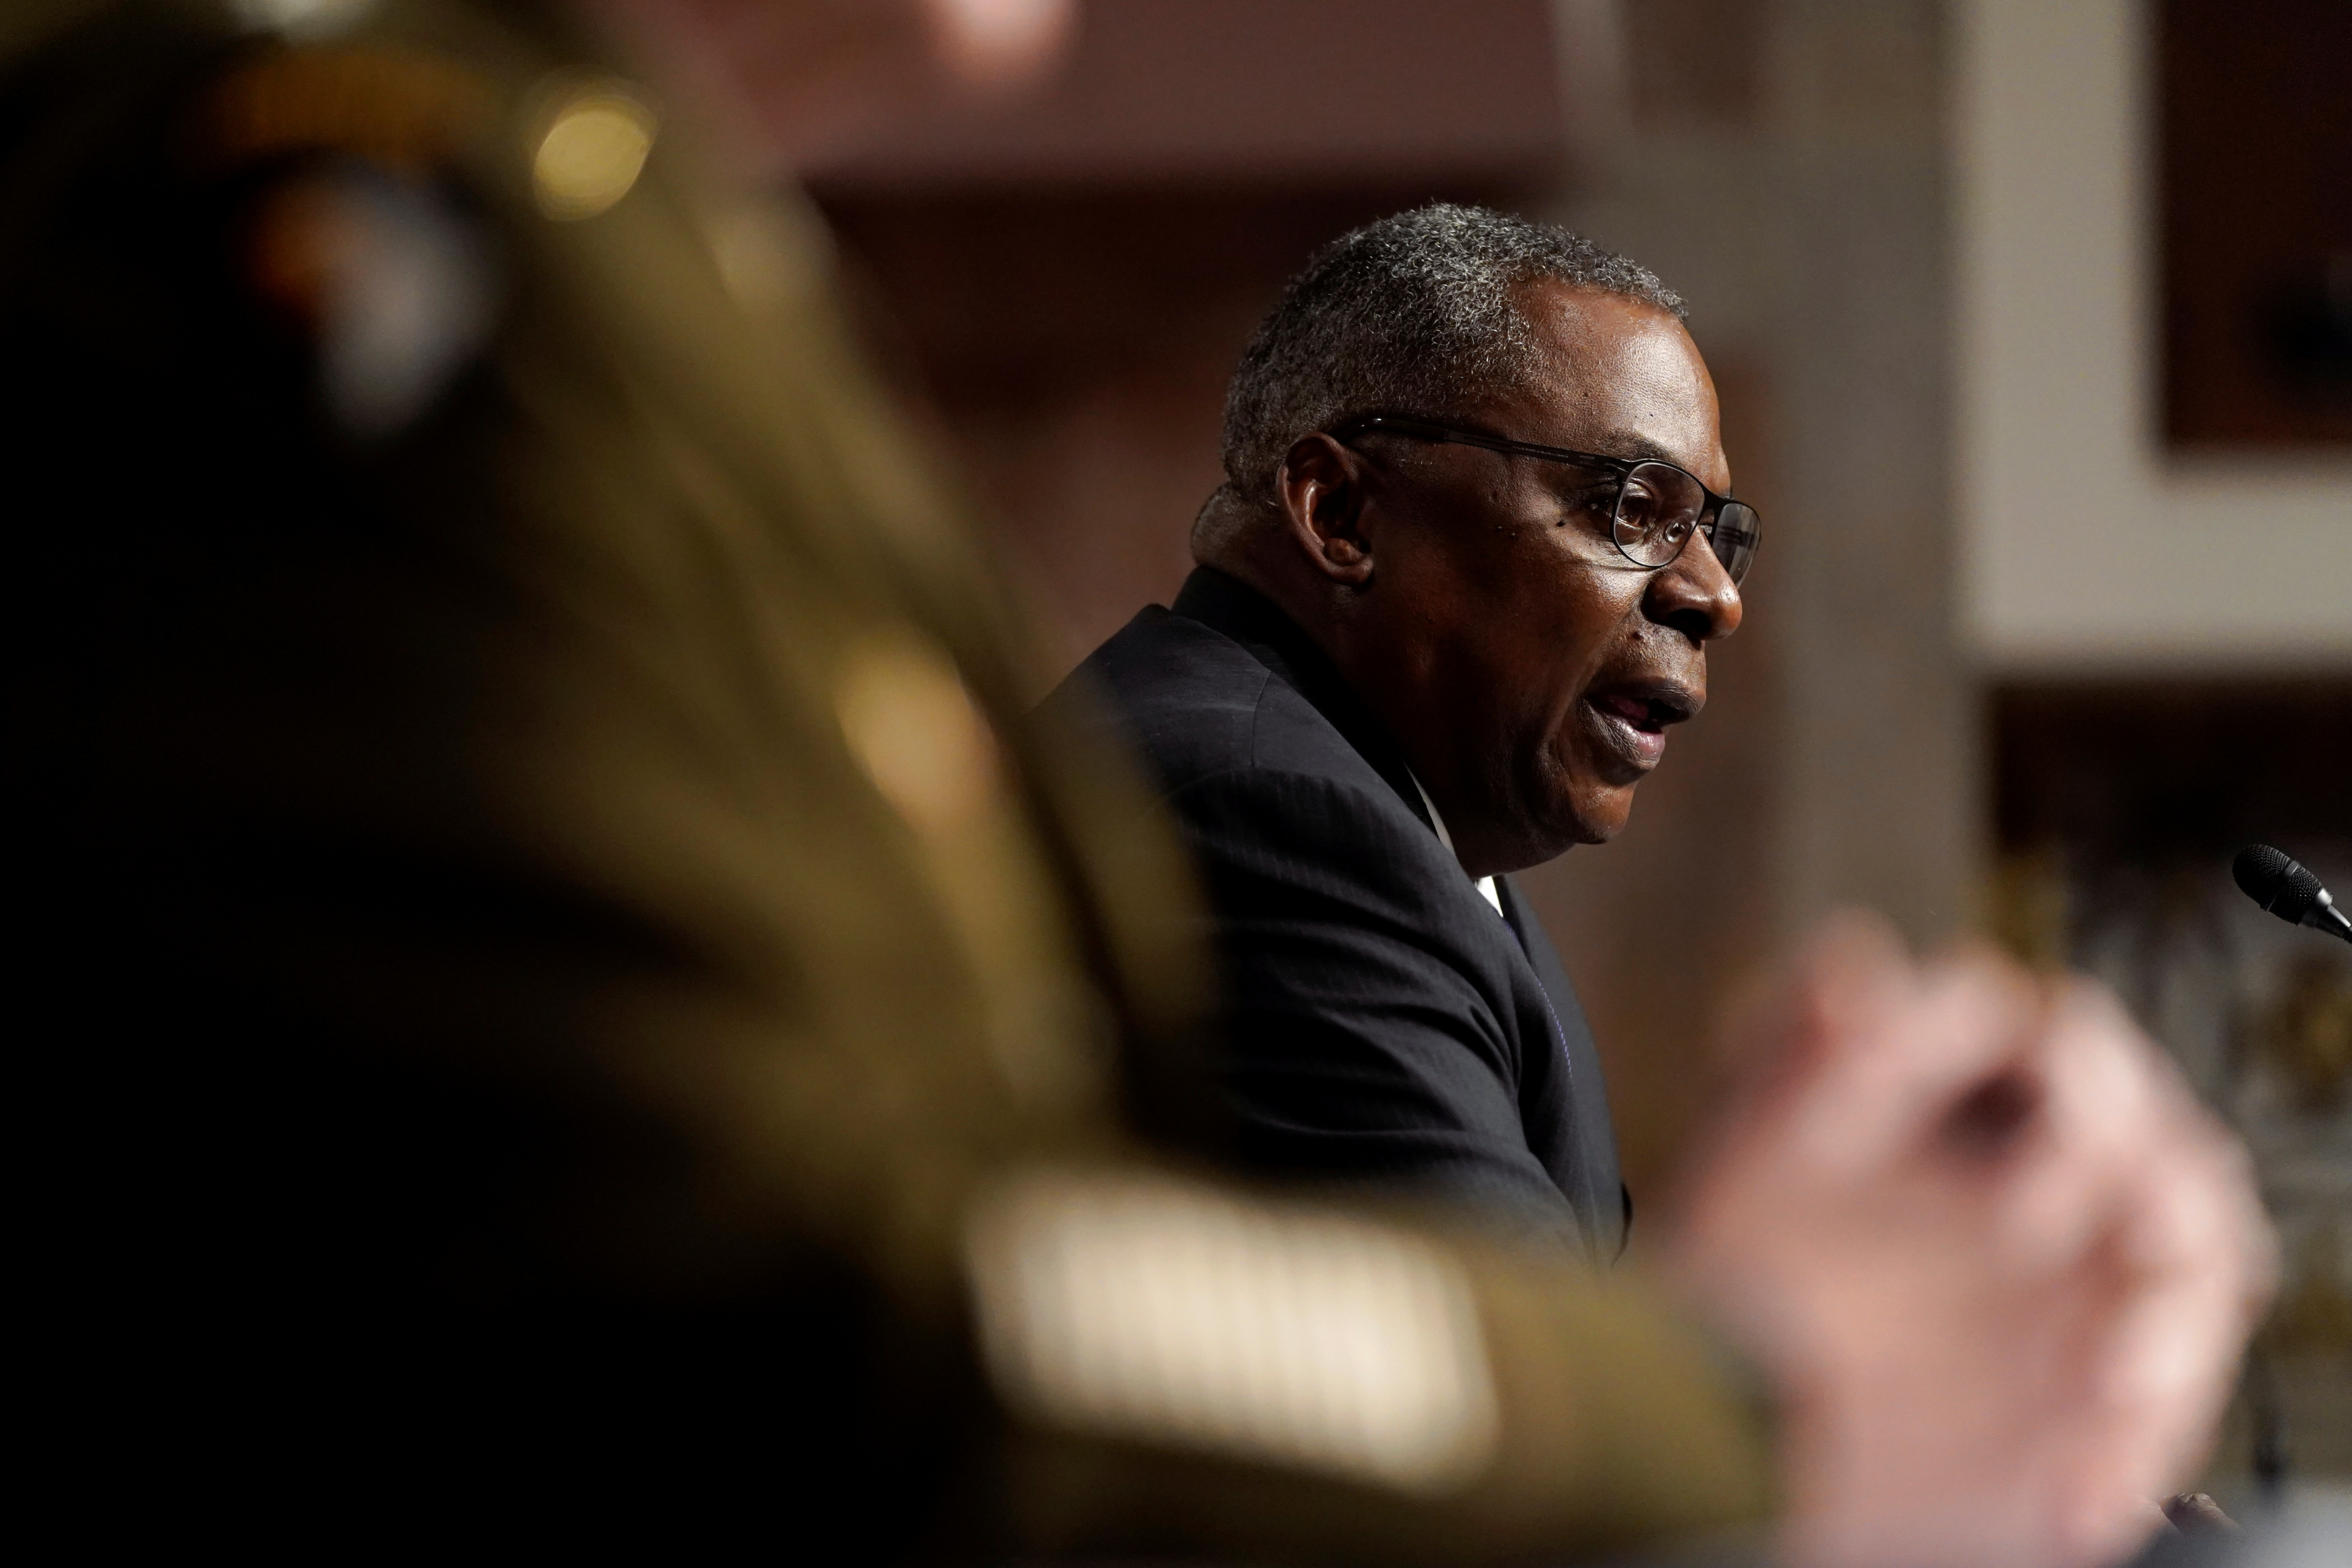 U.S. Defense Secretary Lloyd Austin speaks during a Senate Armed Services Committee hearing on the conclusion of military operations in Afghanistan and plans for future counterterrorism operations, on Capitol Hill in Washington, U.S., September 28, 2021. Patrick Semansky/Pool via REUTERS